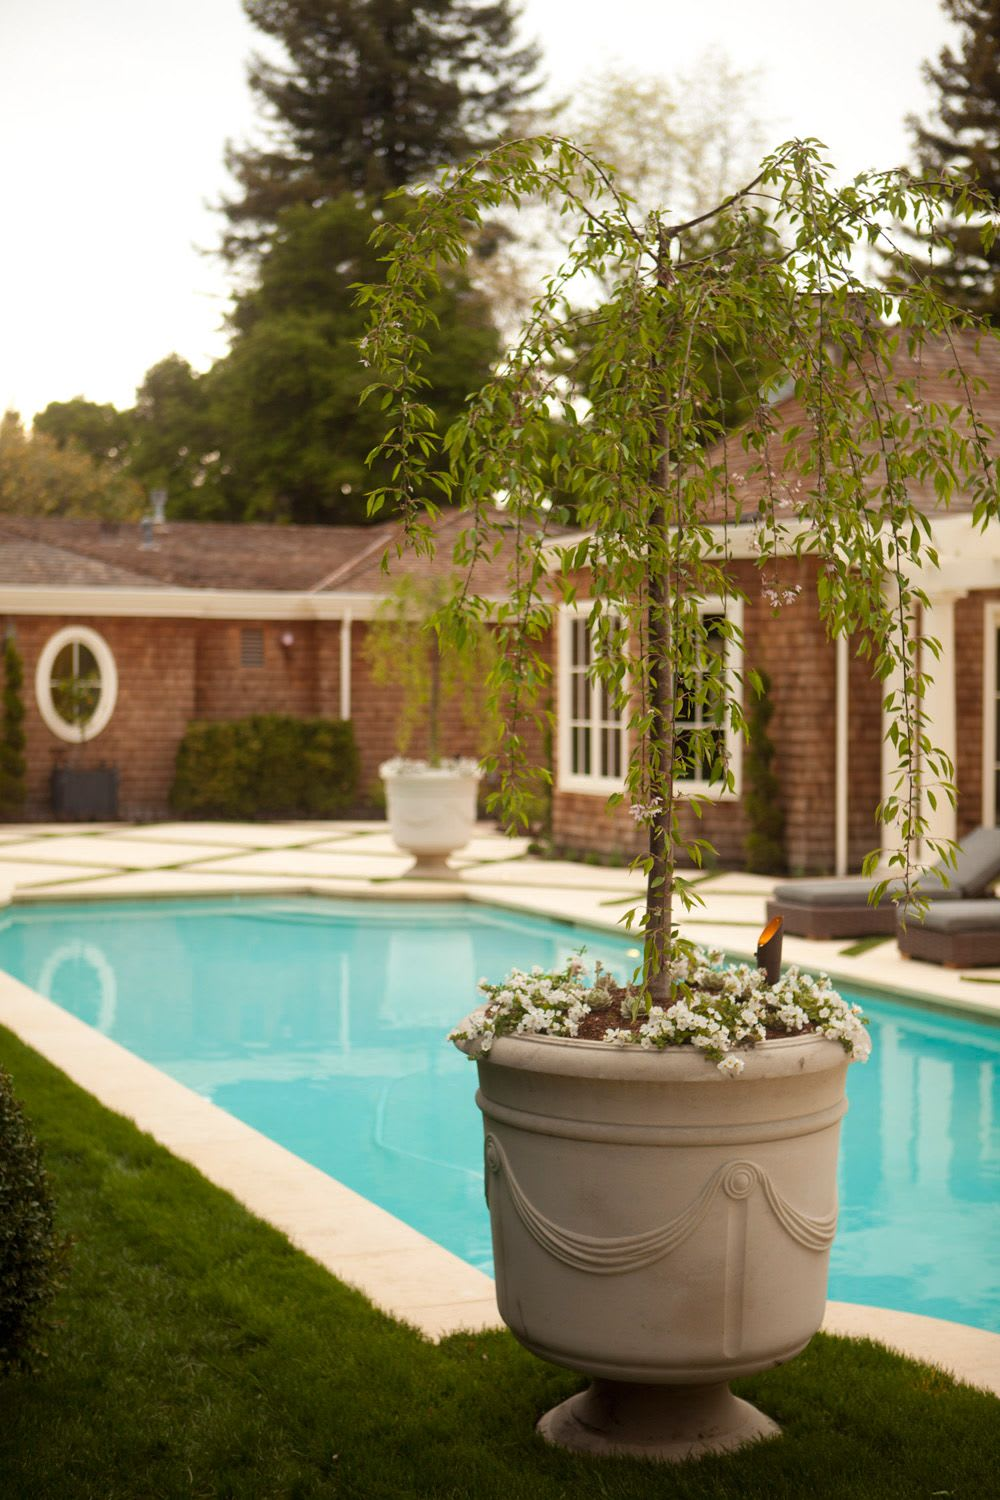 Plants & Landscape by Zeterre Landscape Architecture seen at Private Residence, Atherton - Atherton's Selby Lane